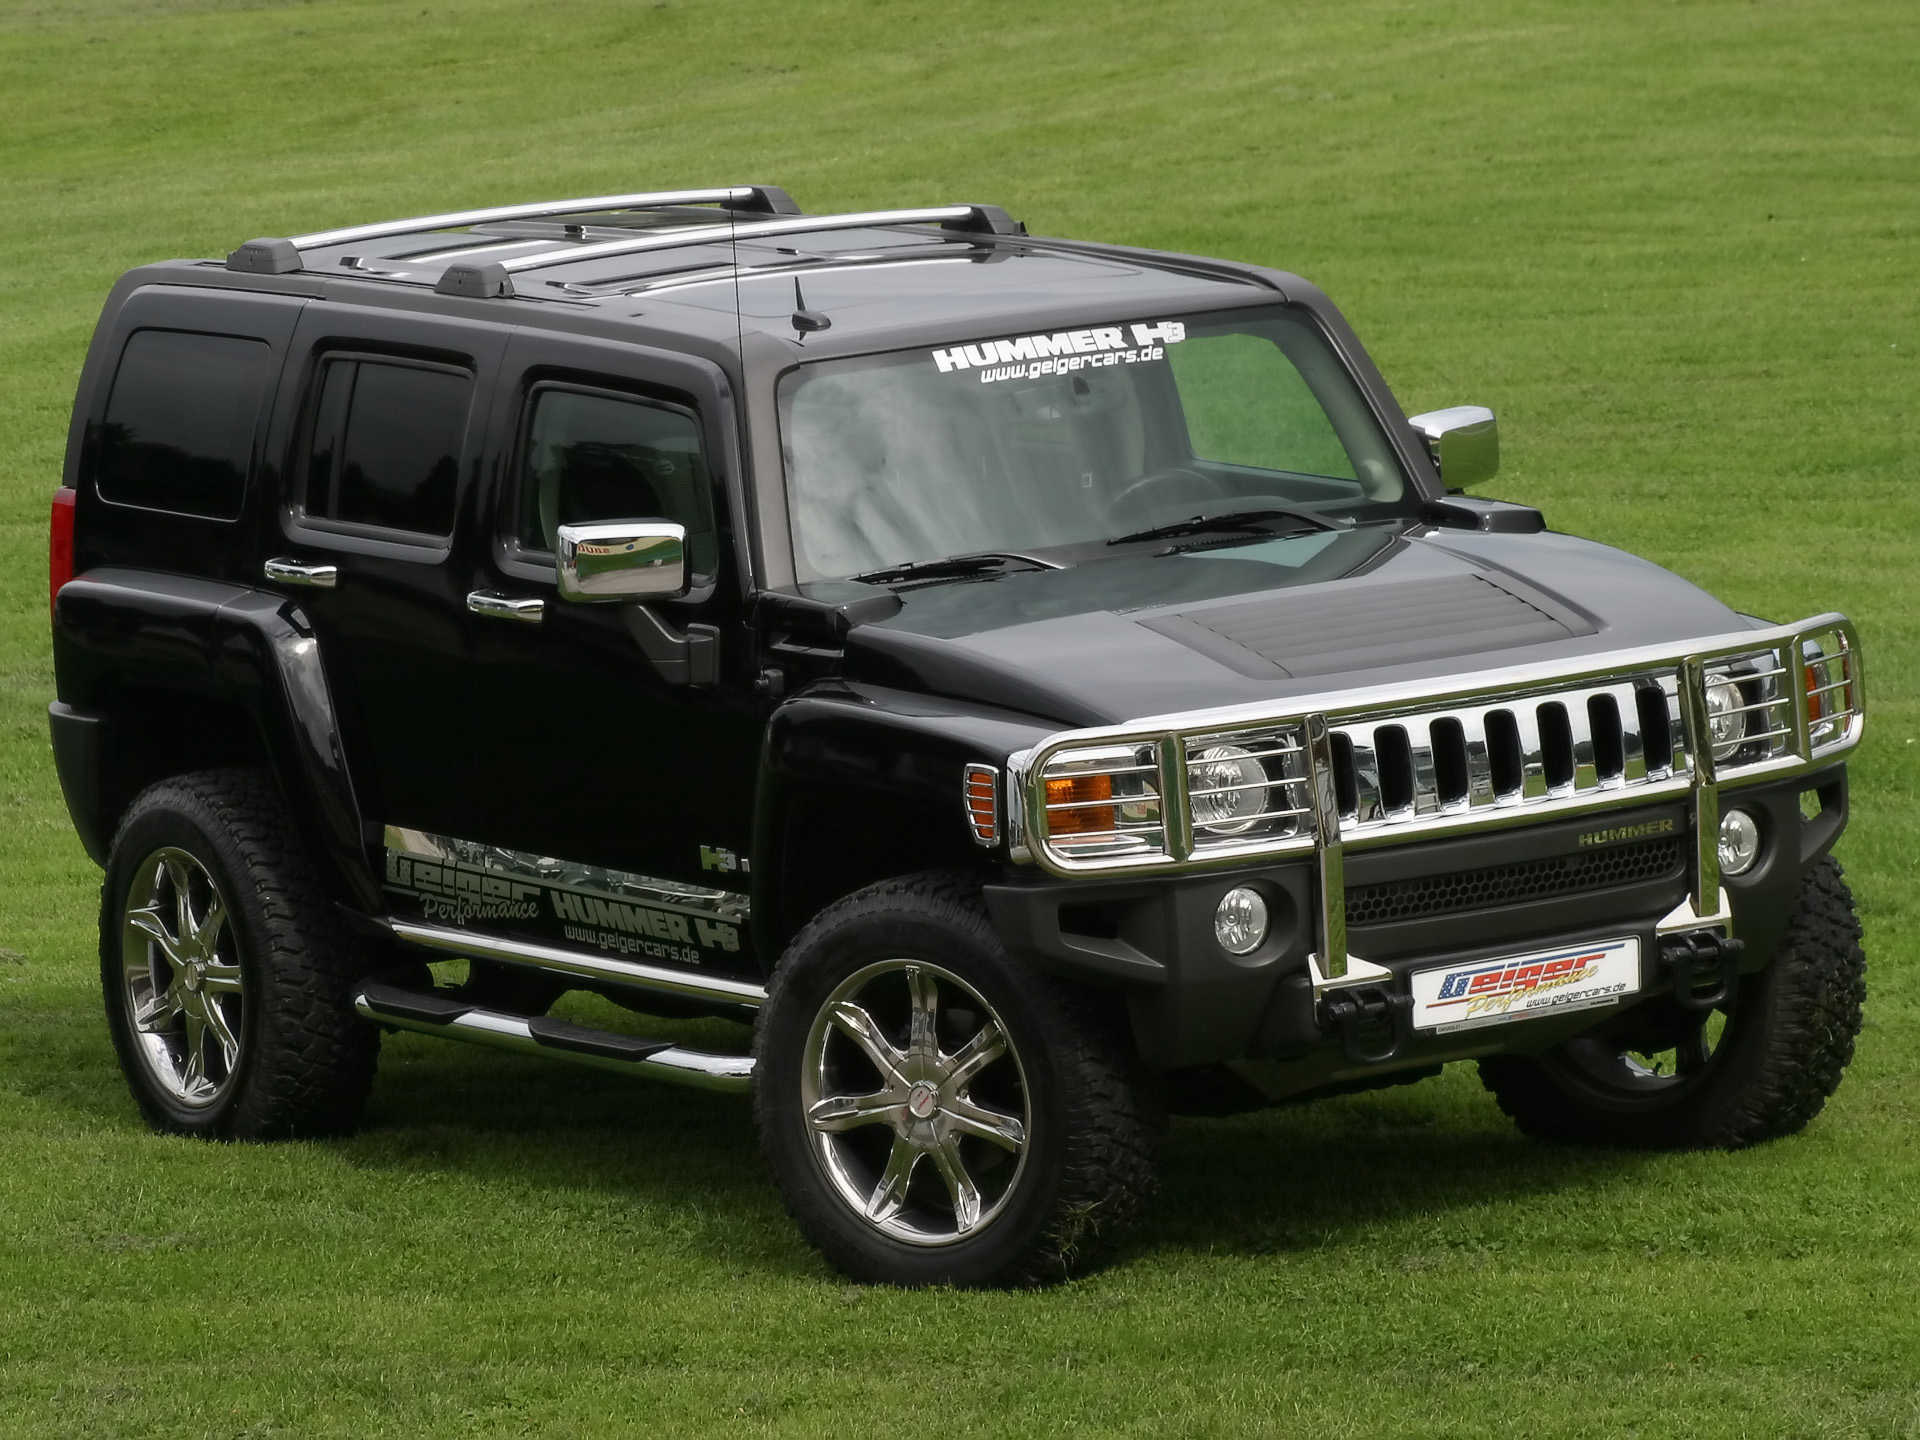 3dtuning Of Hummer H3 Suv 2005 3dtuning Com Unique On